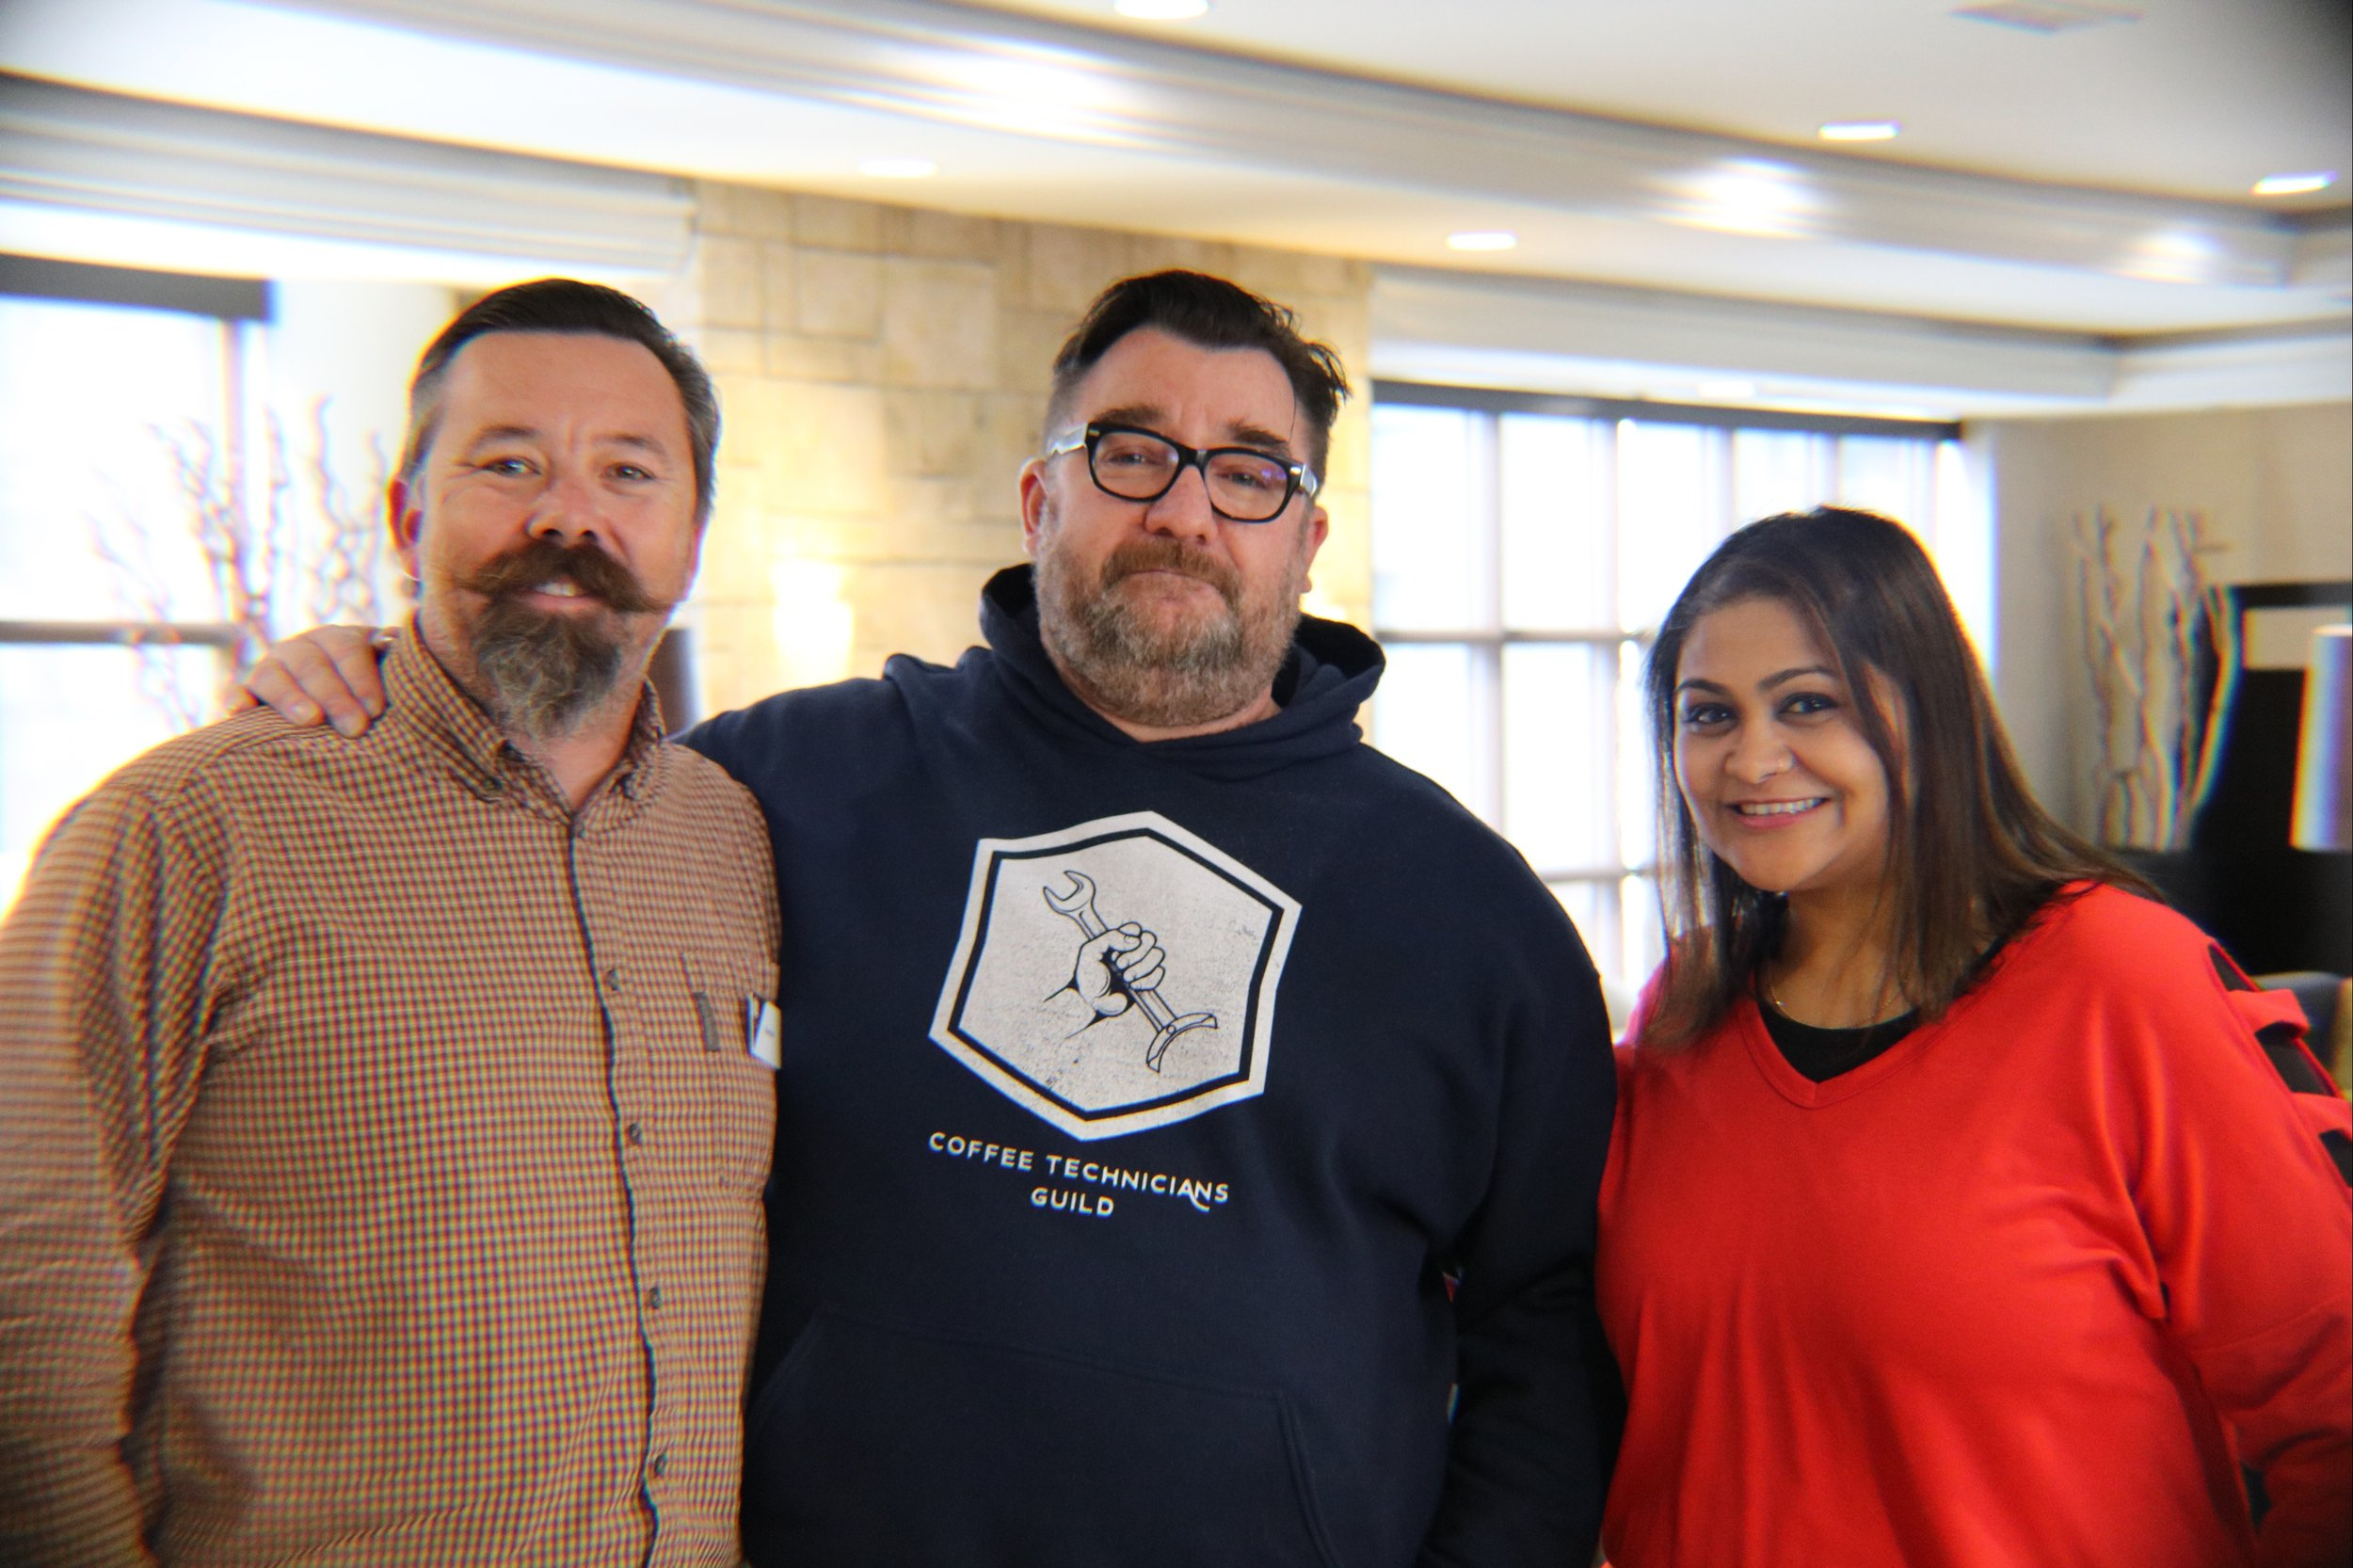 It almost reads like a poorly written romantic comedy: two people meet in a taxi, realize they have a lot of things in common, the conversation carrying over to a bar in the airport. - From left to right: Shad Biaz, Hylan Joseph, and Mansi Chokshi at the All Guilds meeting this past March in Ann Arbor, US.